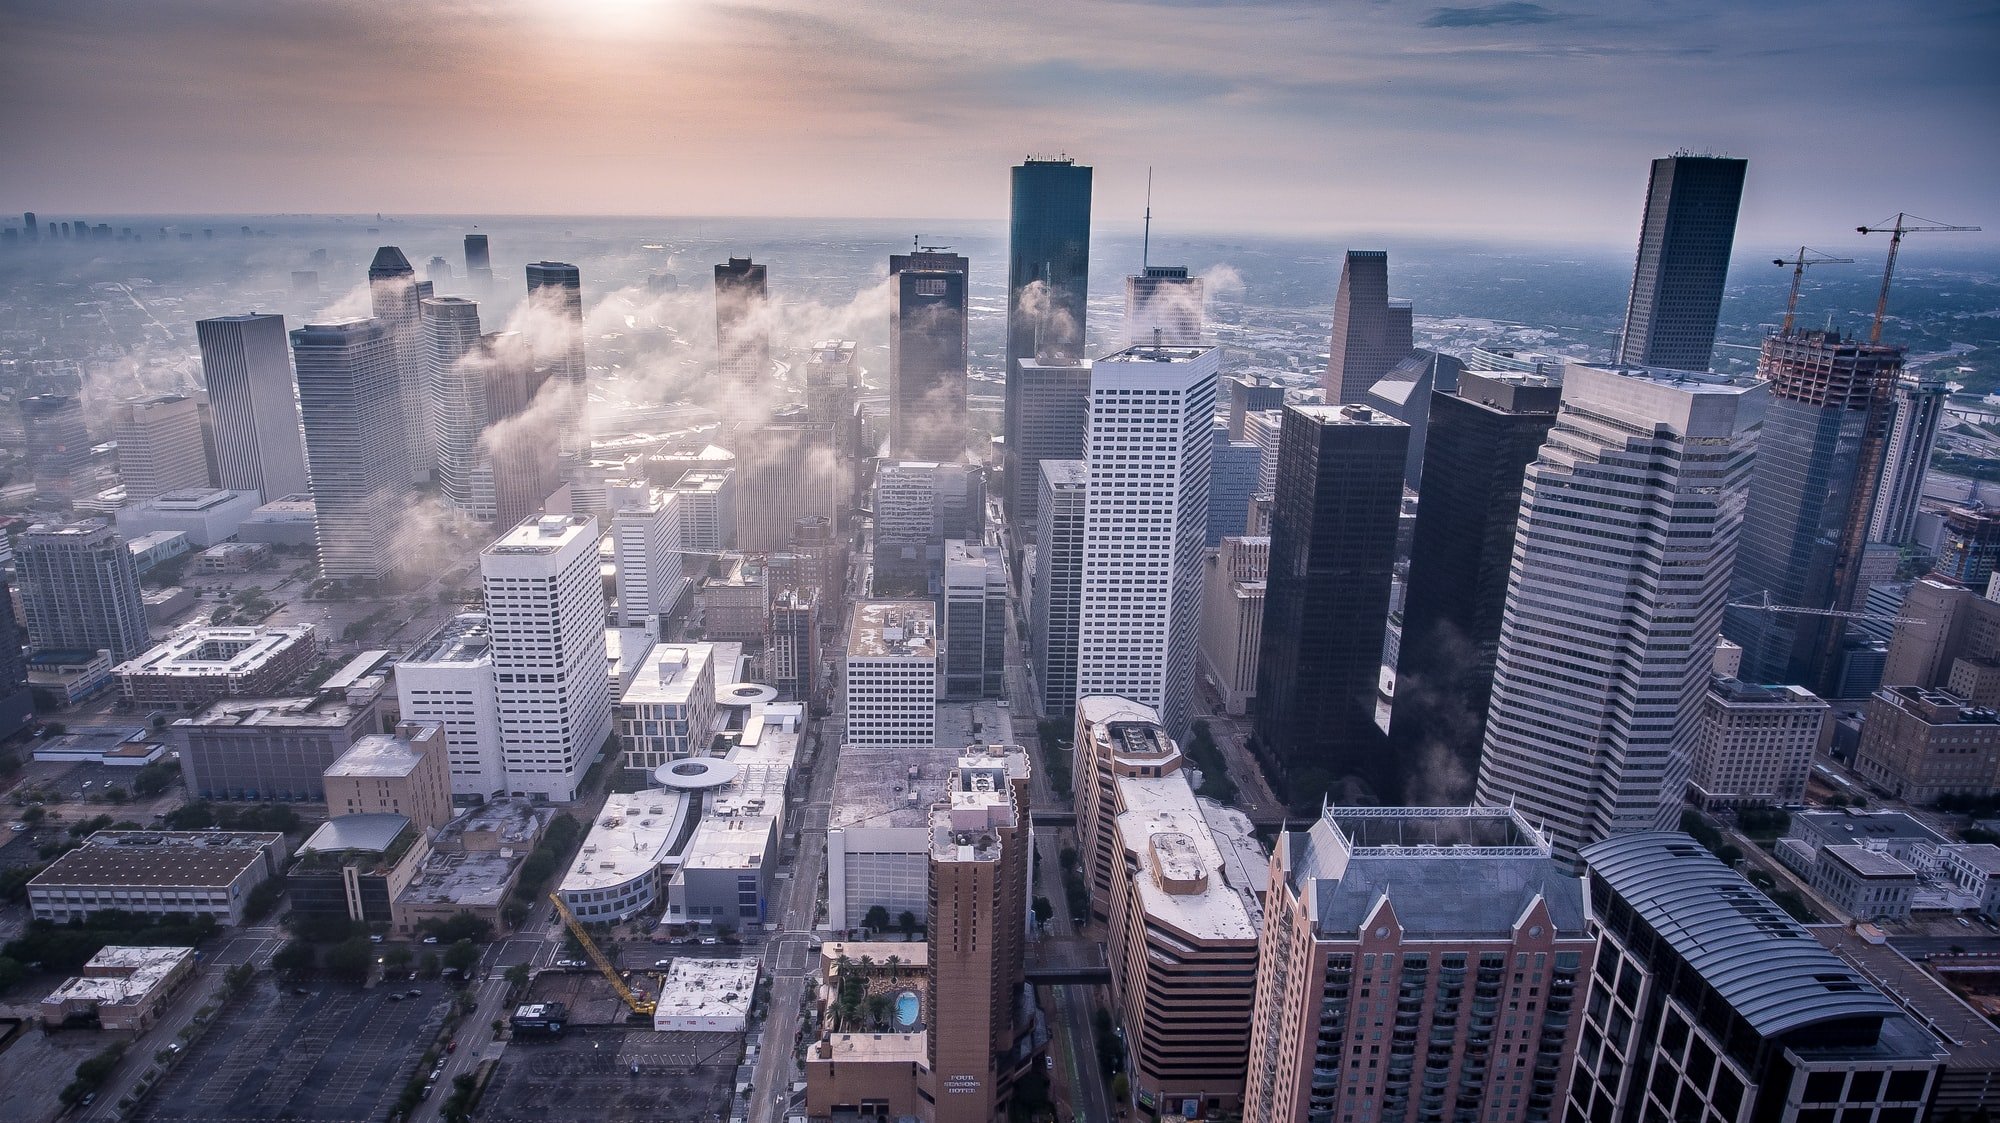 Top 5 Houston photographer Instagram accounts you need to follow right now!